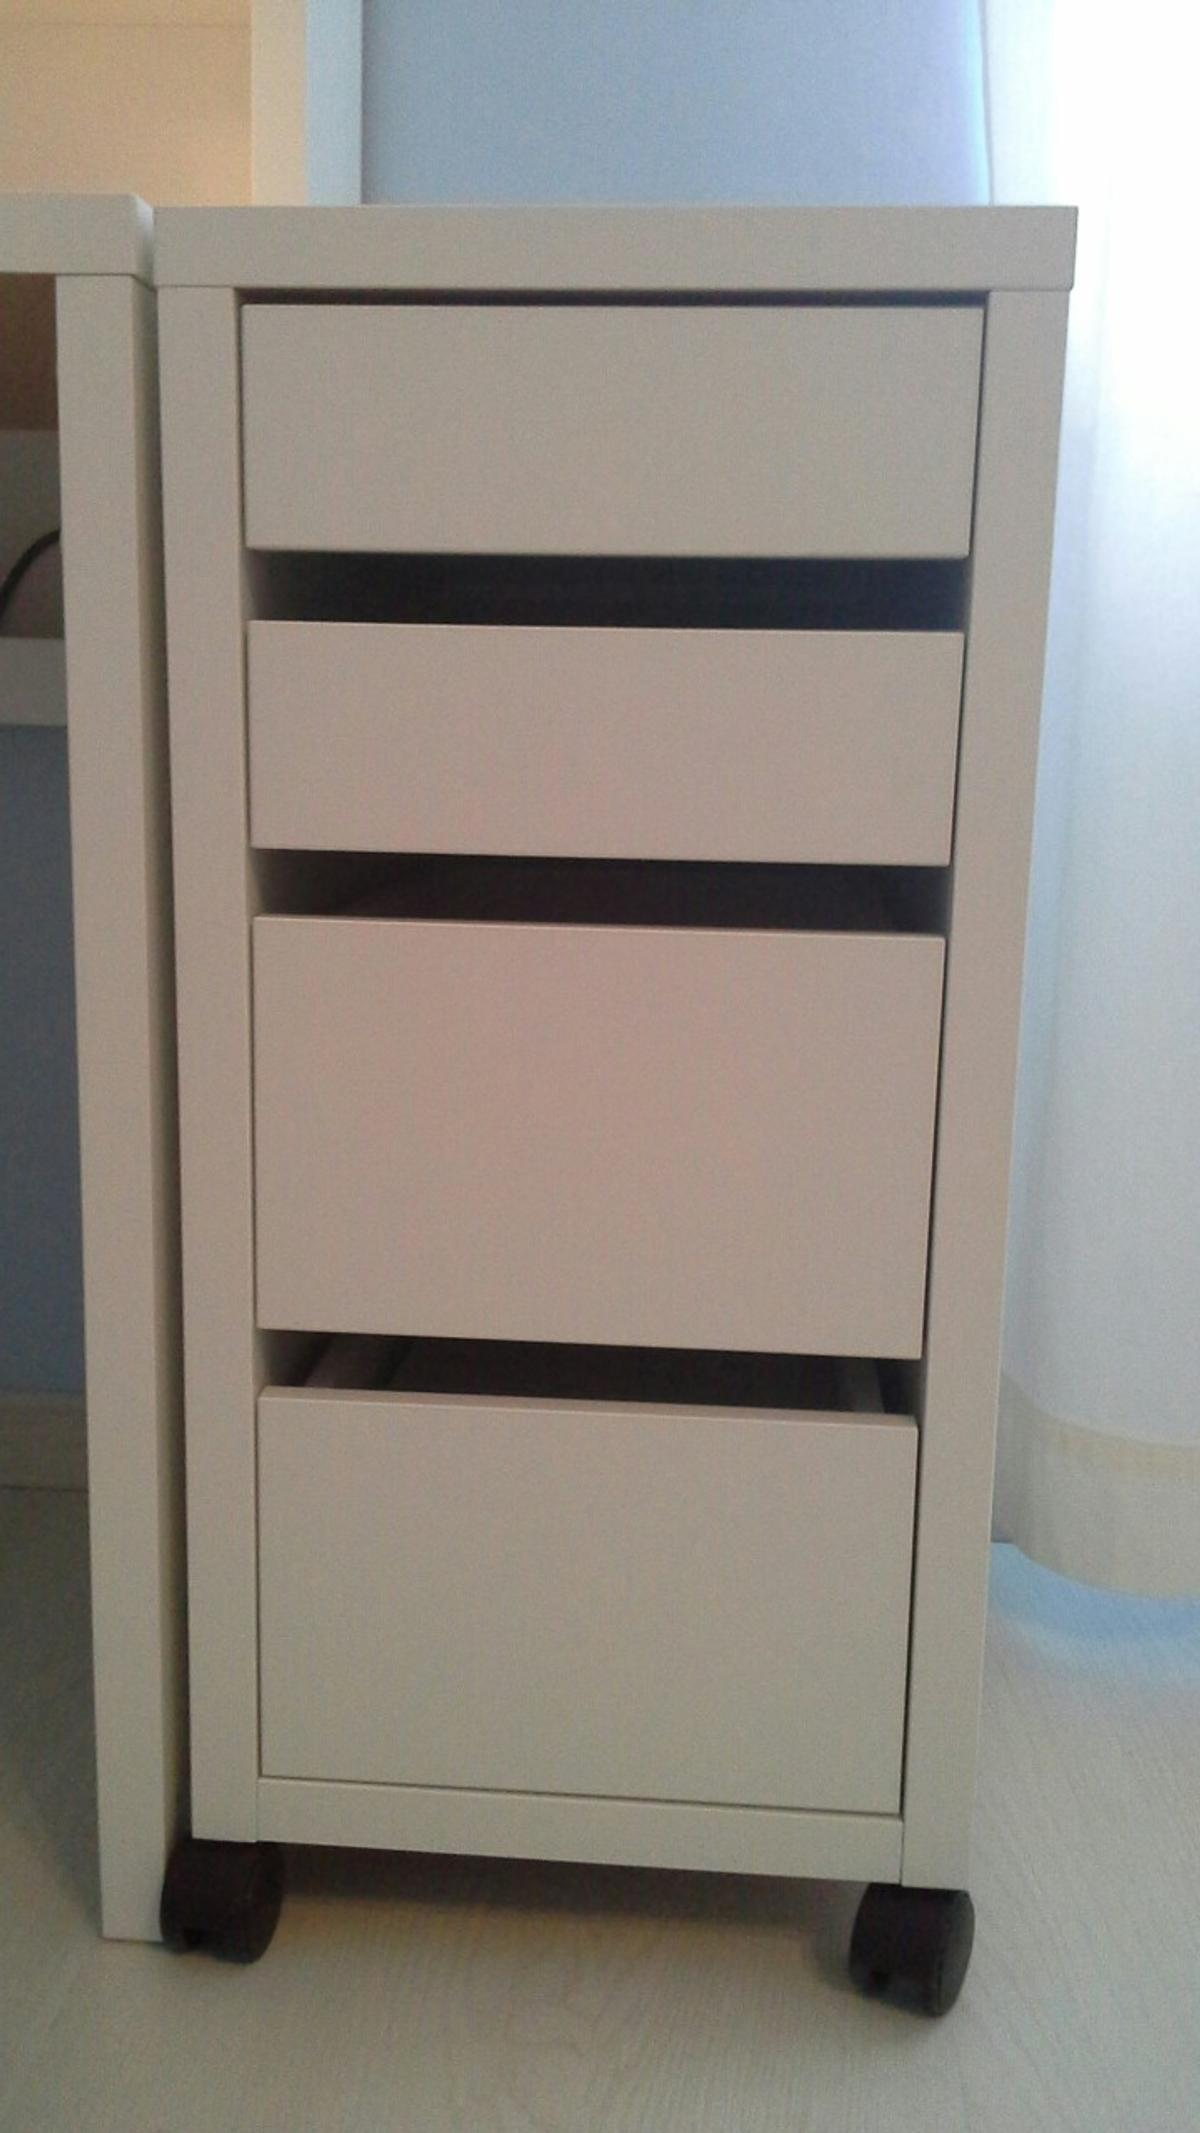 Comodino Con Ruote Ikea.Cassettiera Con Rotelle Ikea In 10092 Beinasco For 25 00 For Sale